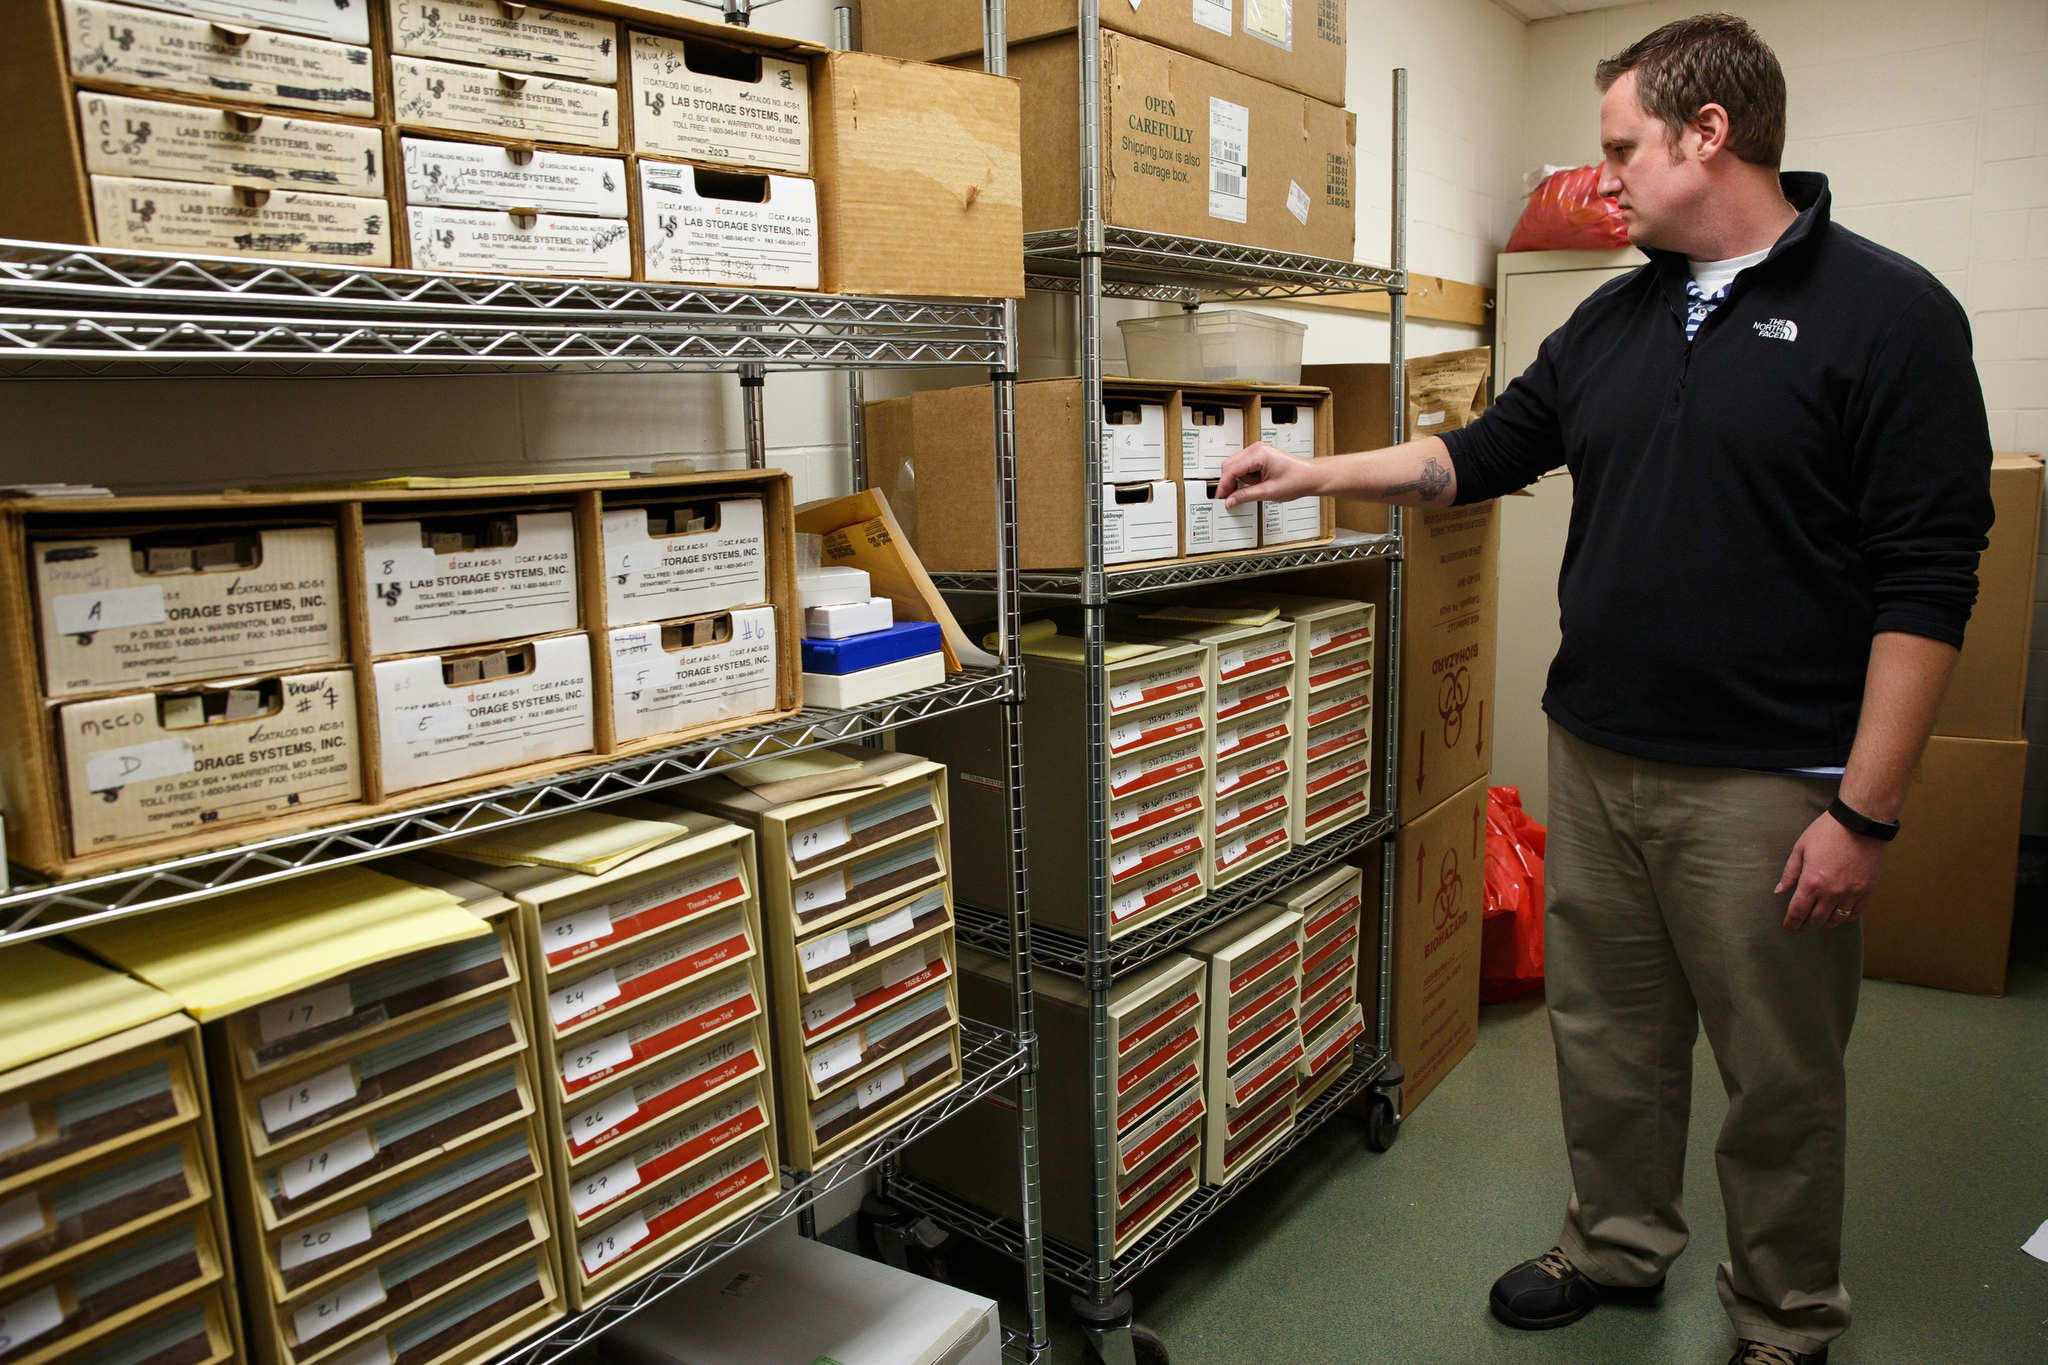 Alexander Balacki, First Deputy at the Coroner´s office, Montgomery County Coroner´s office, Norristown, PA is shown in the storage room that holds Microscopic slides of organ tissue.